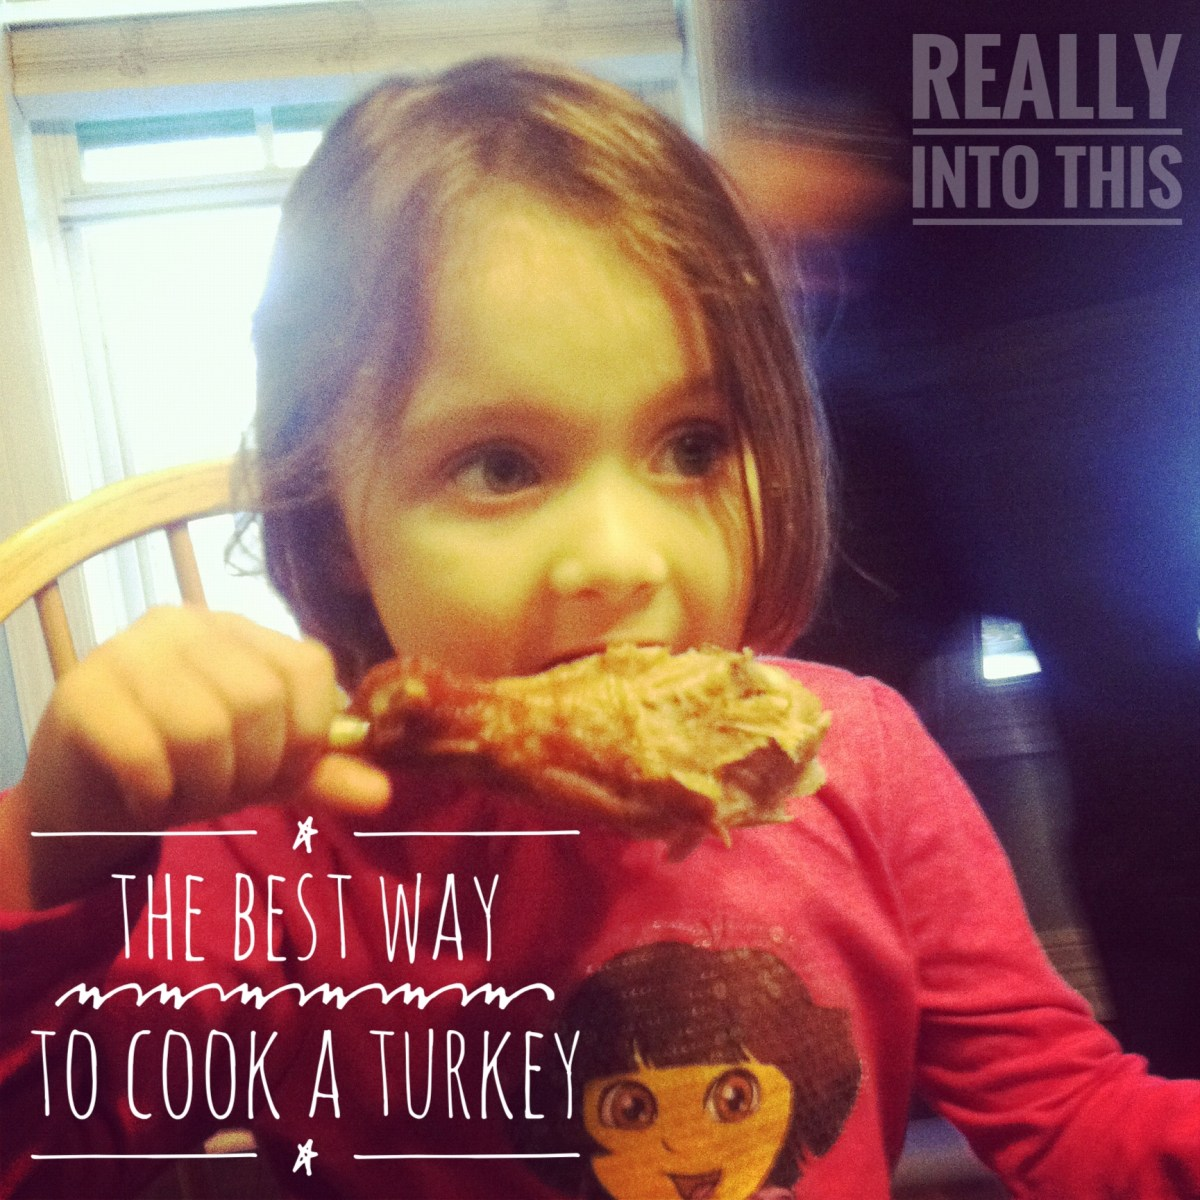 The Best Way to Cook a Turkey